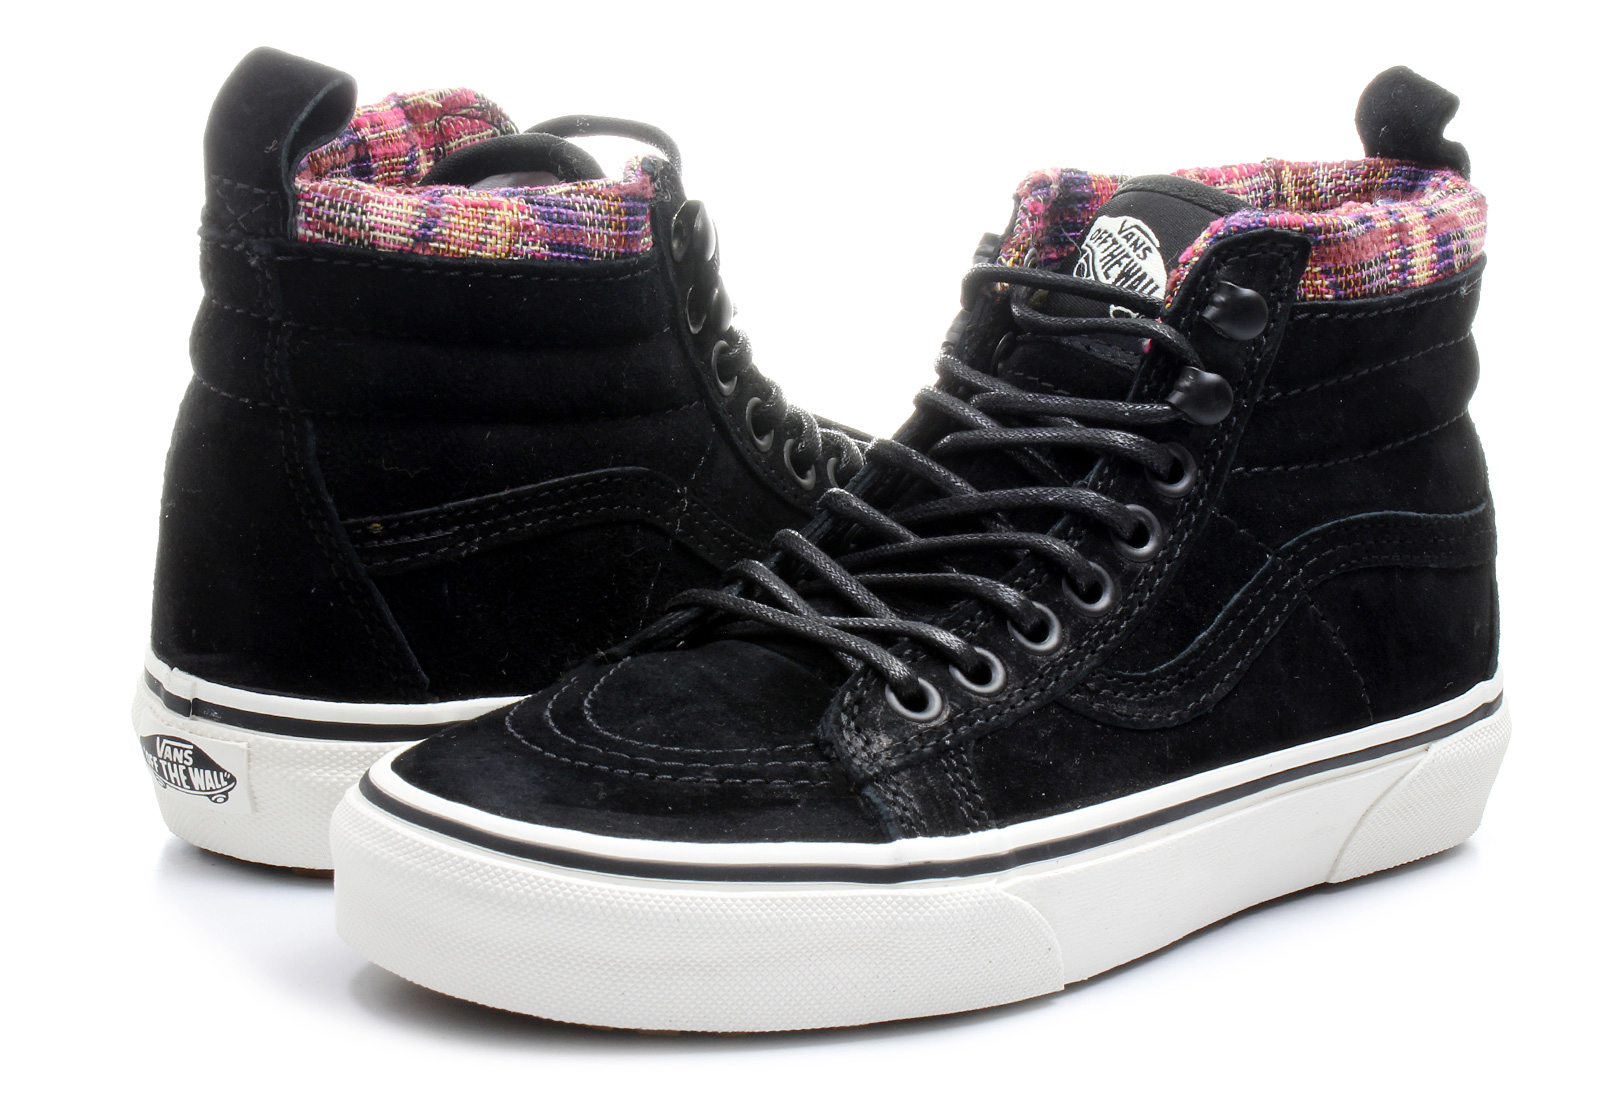 vans sneakers sk8 hi mte vxh4gzi online shop for sneakers shoes and boots. Black Bedroom Furniture Sets. Home Design Ideas